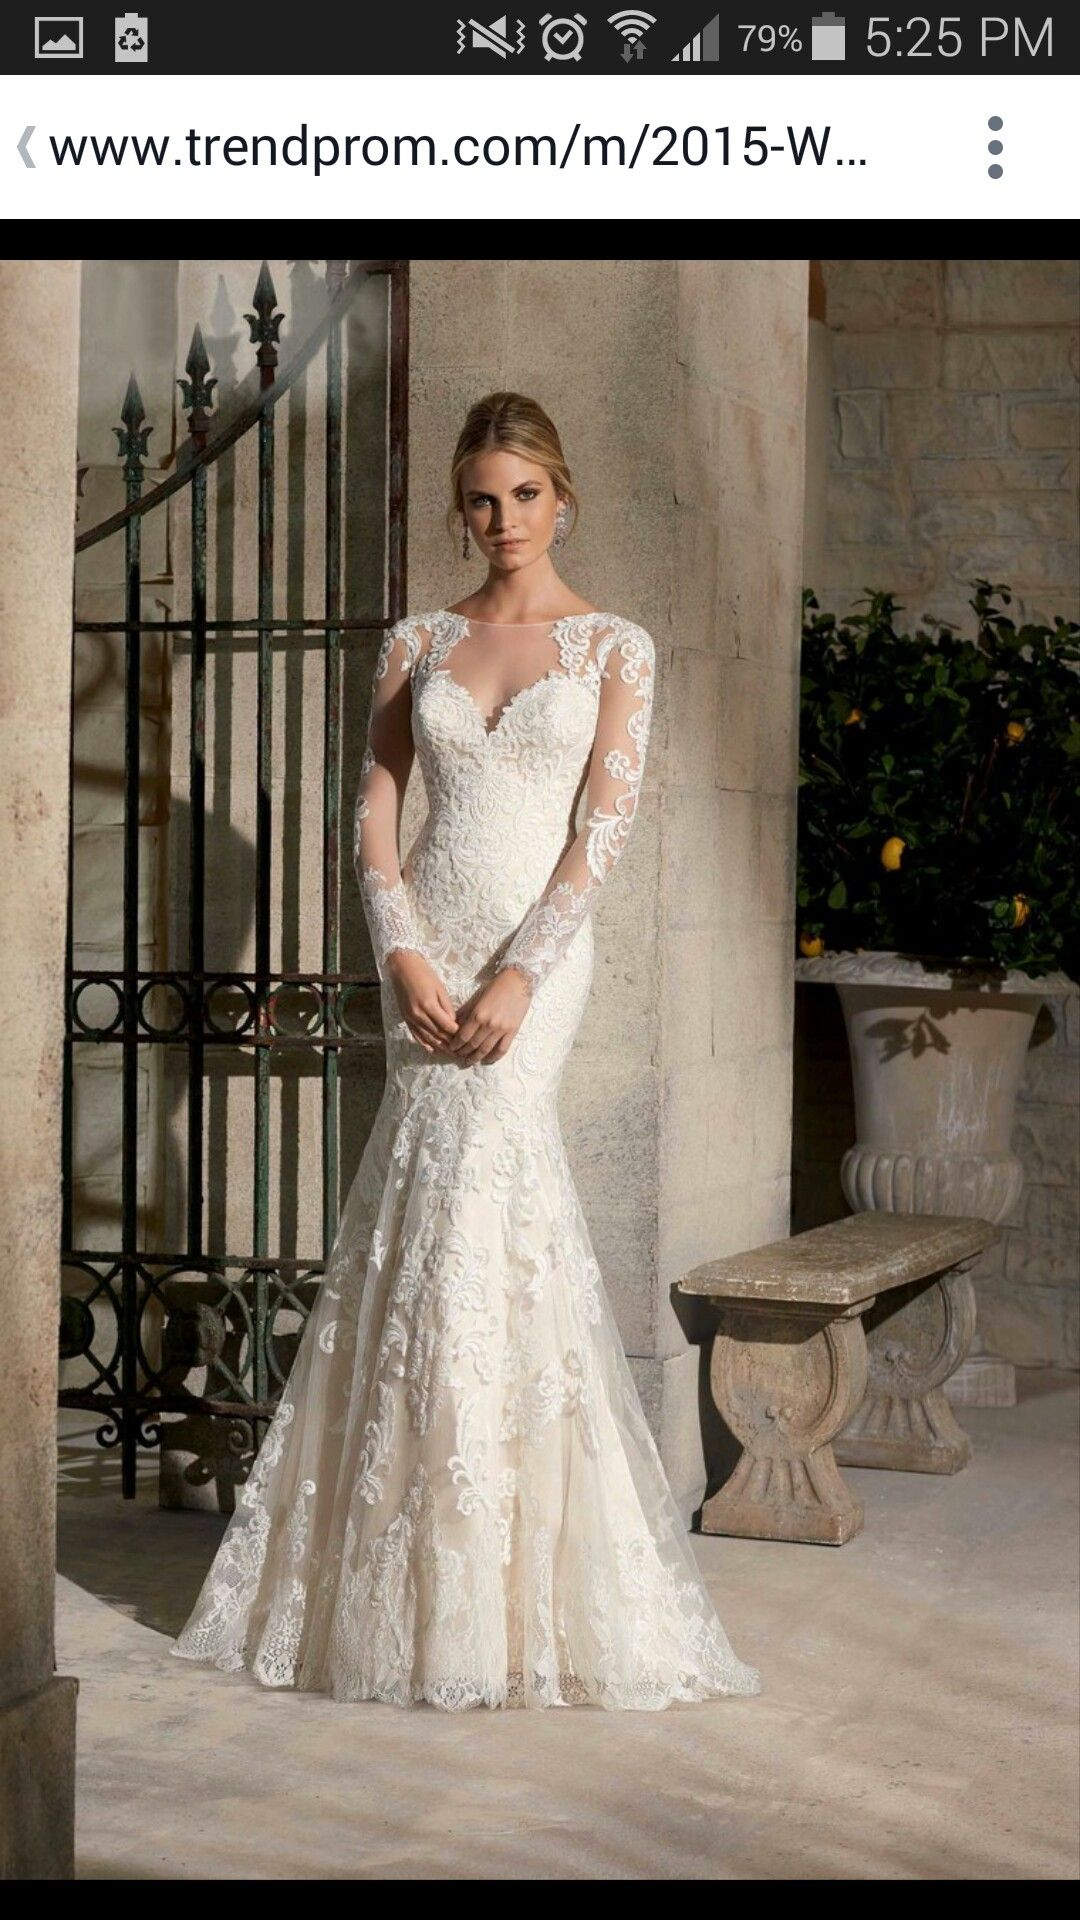 Conservative wedding dress  Pin by Lizbet Alvarez on wedding dress  Pinterest  Wedding dress